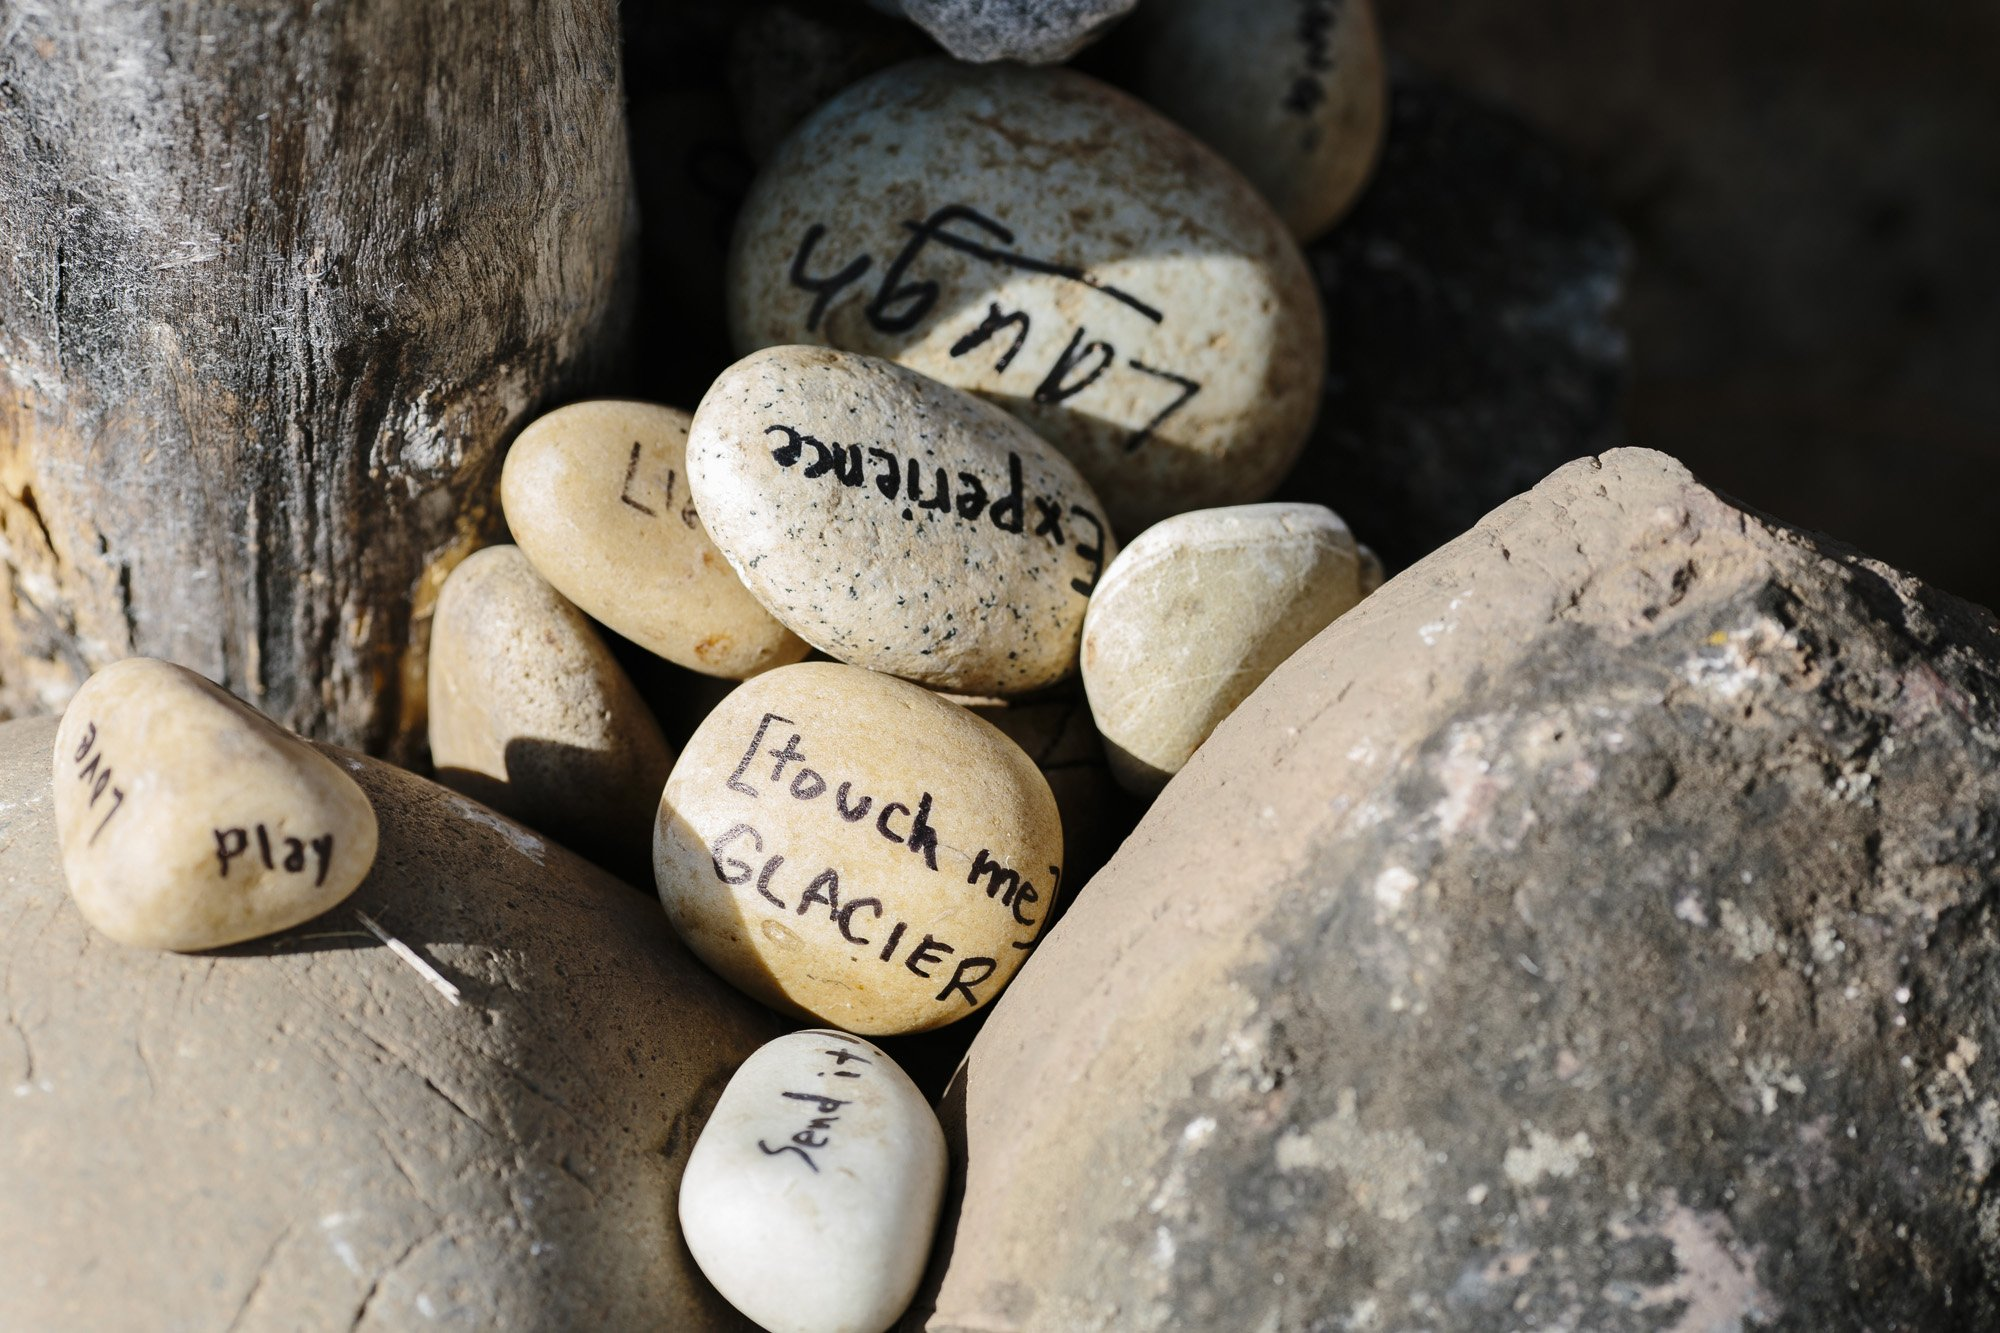 Rocks with love notes for the bride and groom at a wedding